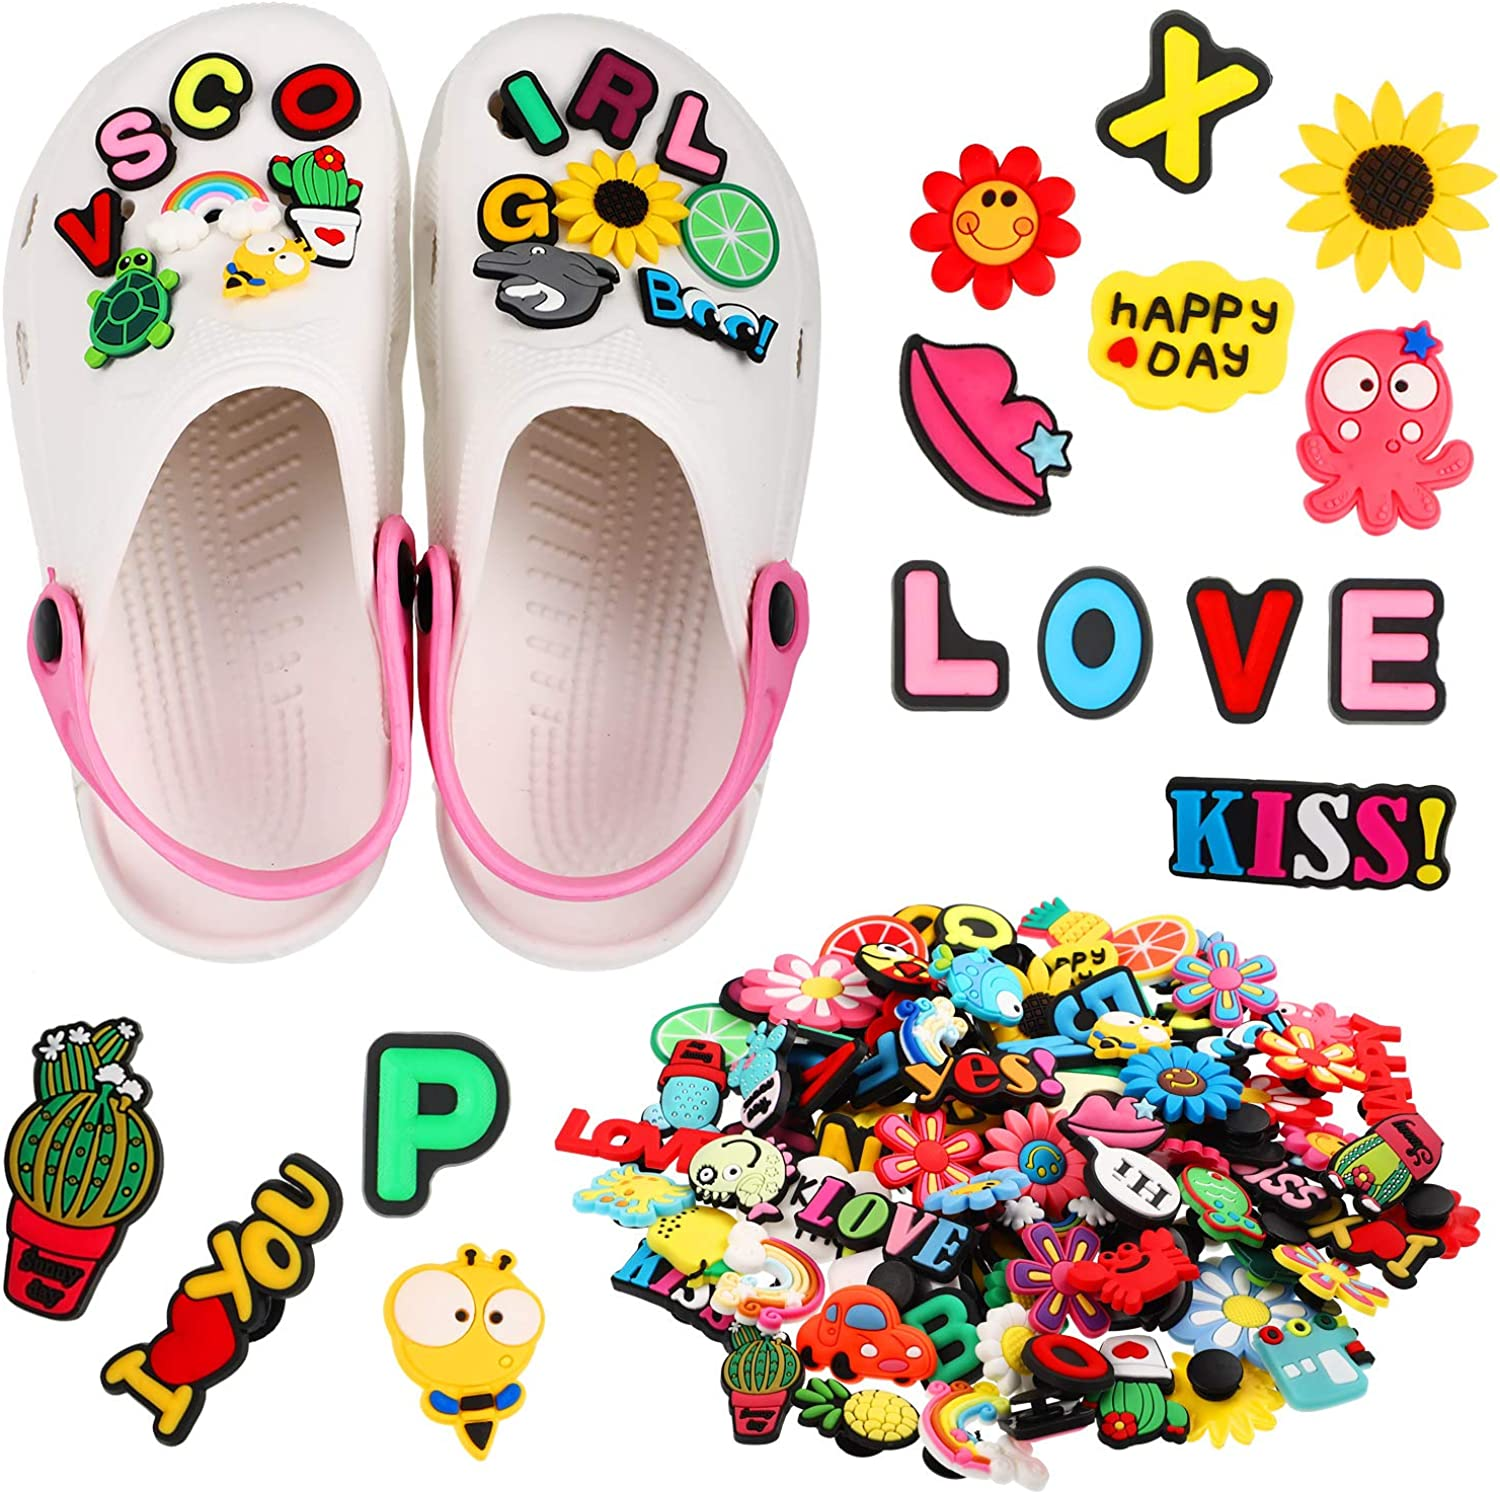 100 Pieces Different Shape Shoes Charms with Number Letter Flower Turtle Decorations for Shoes Wristband Bracelet Party Supplies